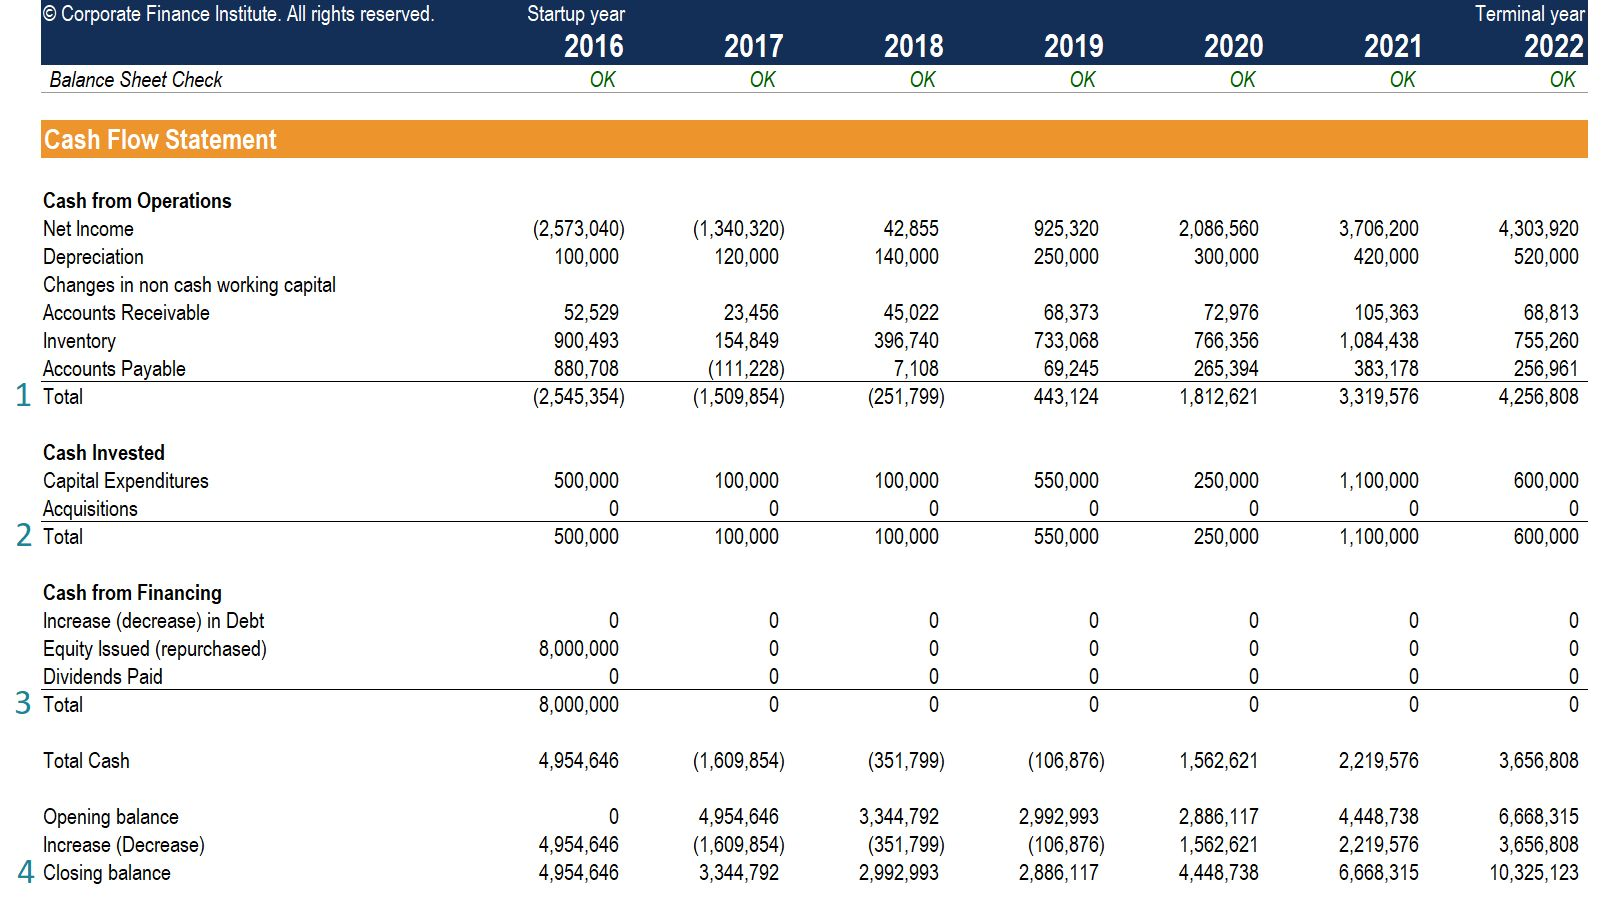 Cash Flow Statement How A Statement Of Cash Flows Works In Cash Position Report Template Best Professional Te In 2020 Cash Flow Statement Cash Flow Report Template